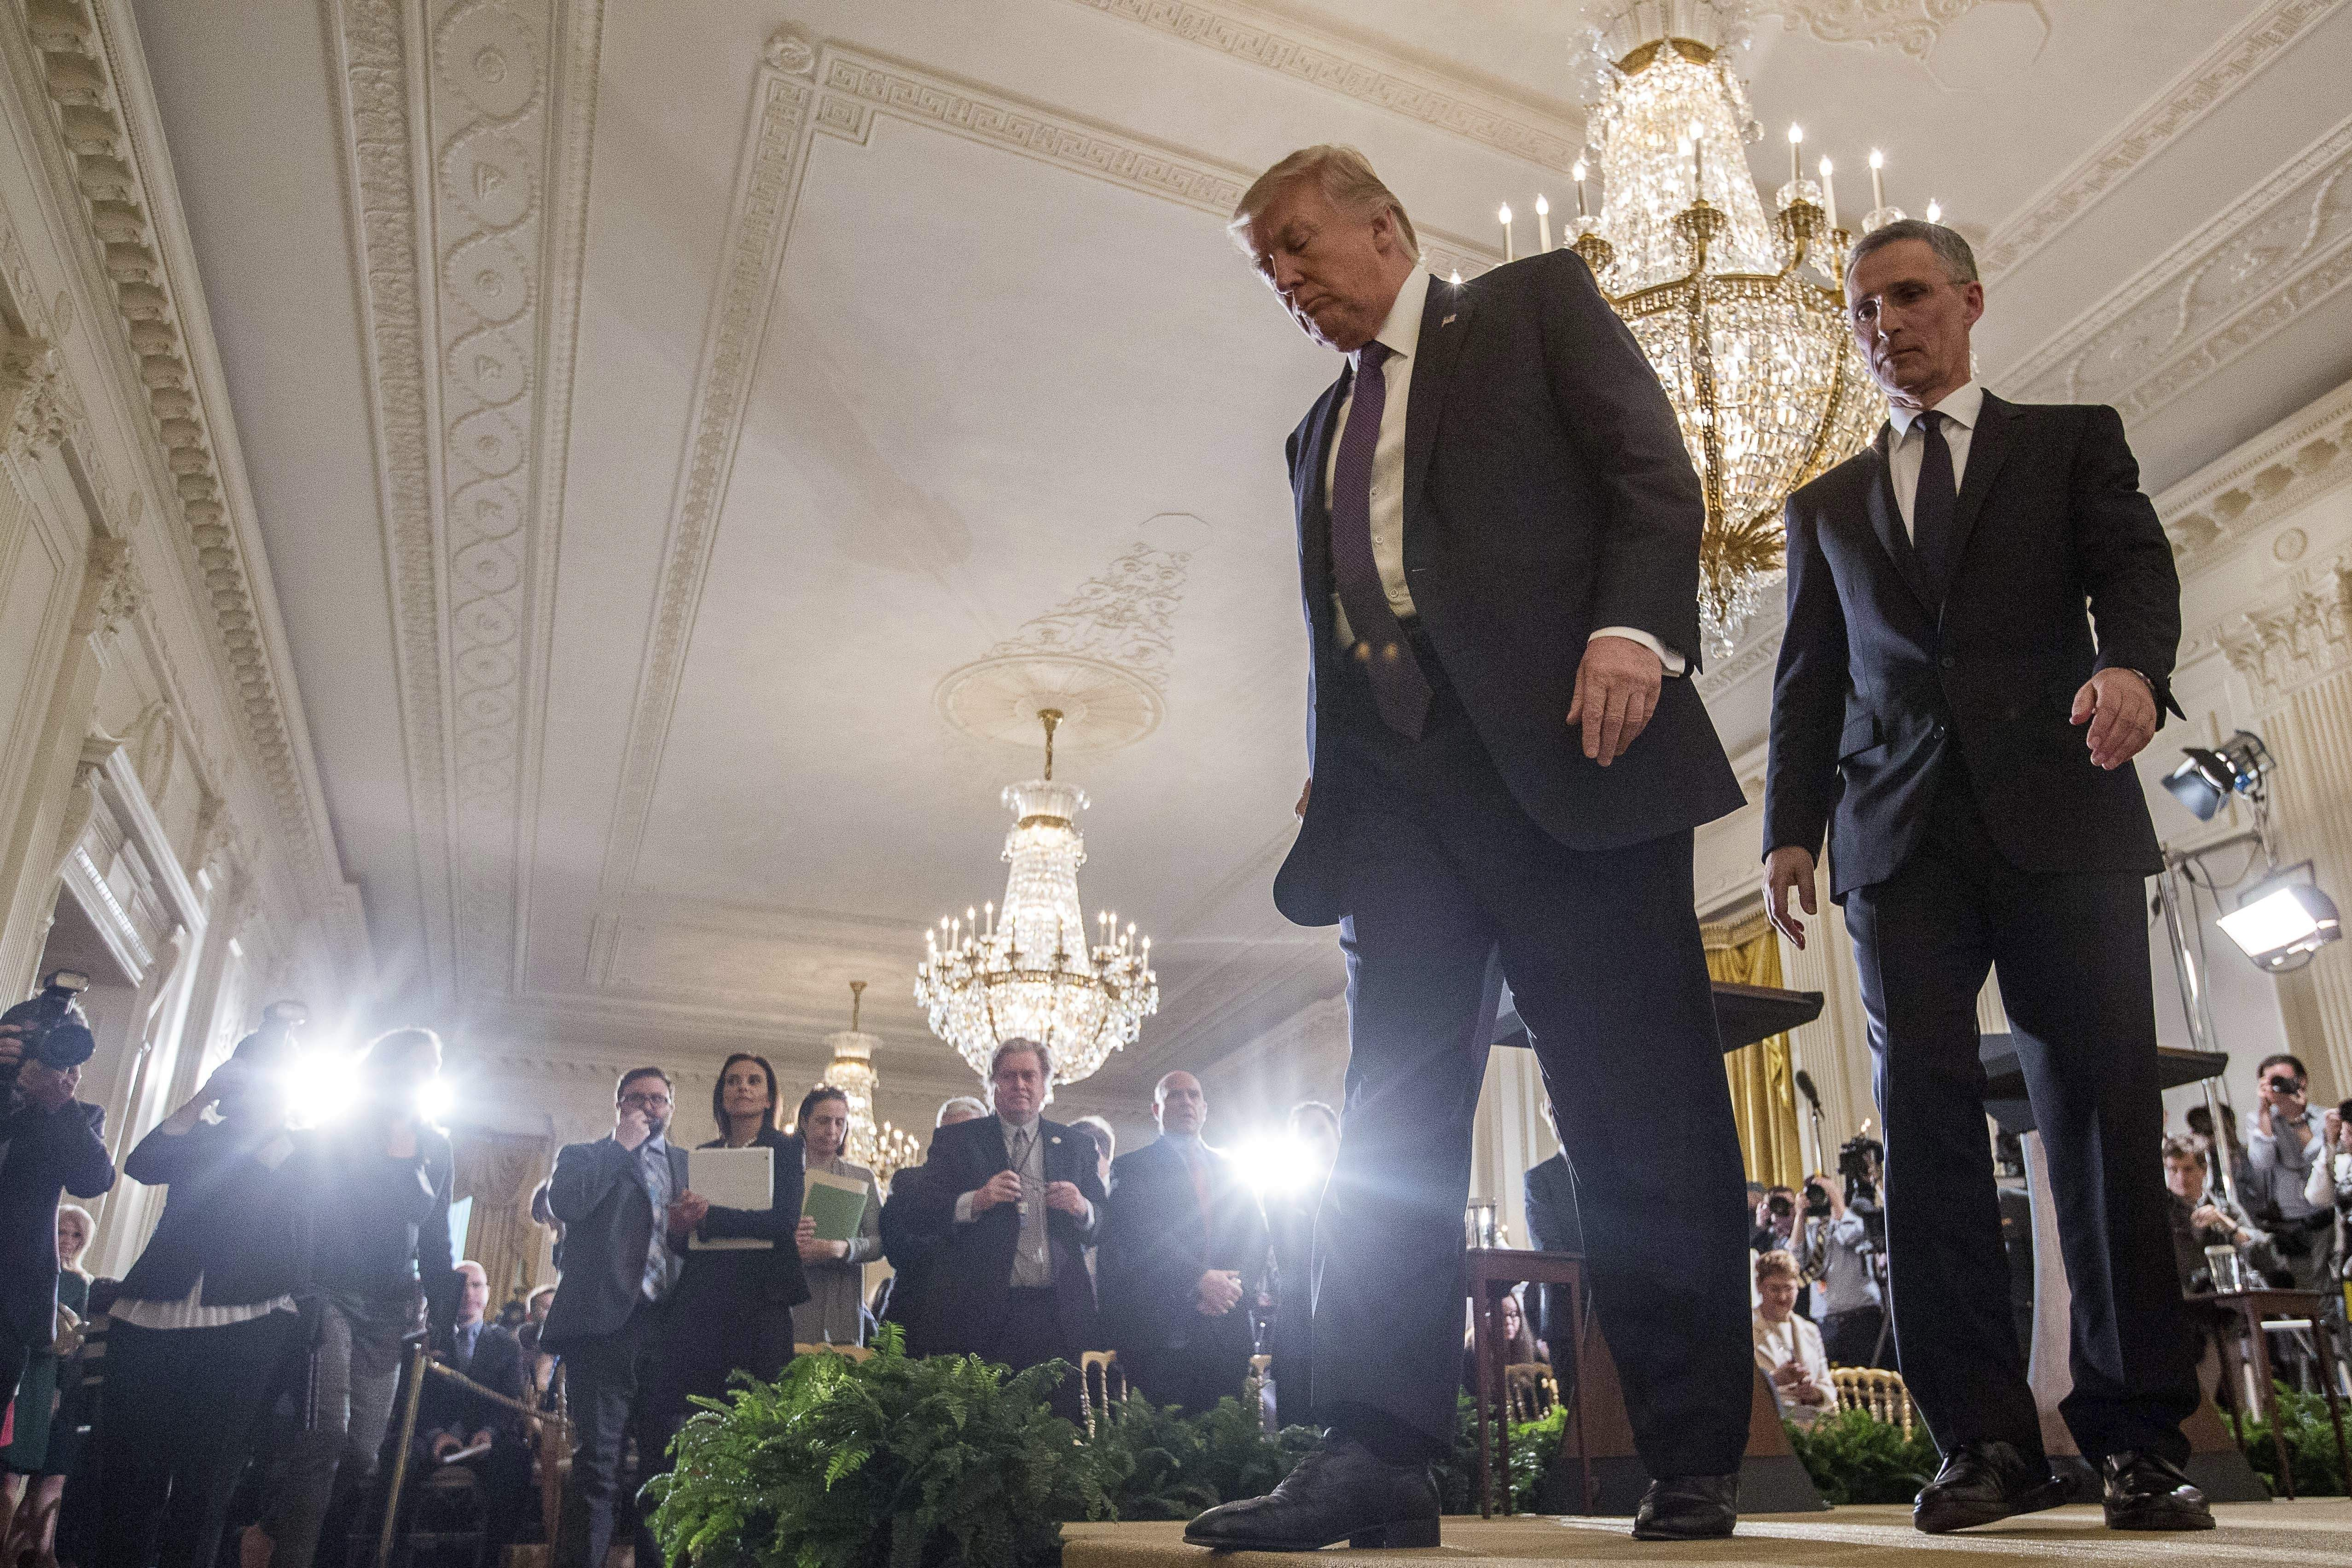 DAY 83 - in this April 12, 2017, file photo, President Donald Trump and NATO Secretary General Jens Stoltenberg depart after a news conference in the East Room of the White House in Washington. (AP Photo/Andrew Harnik, File)